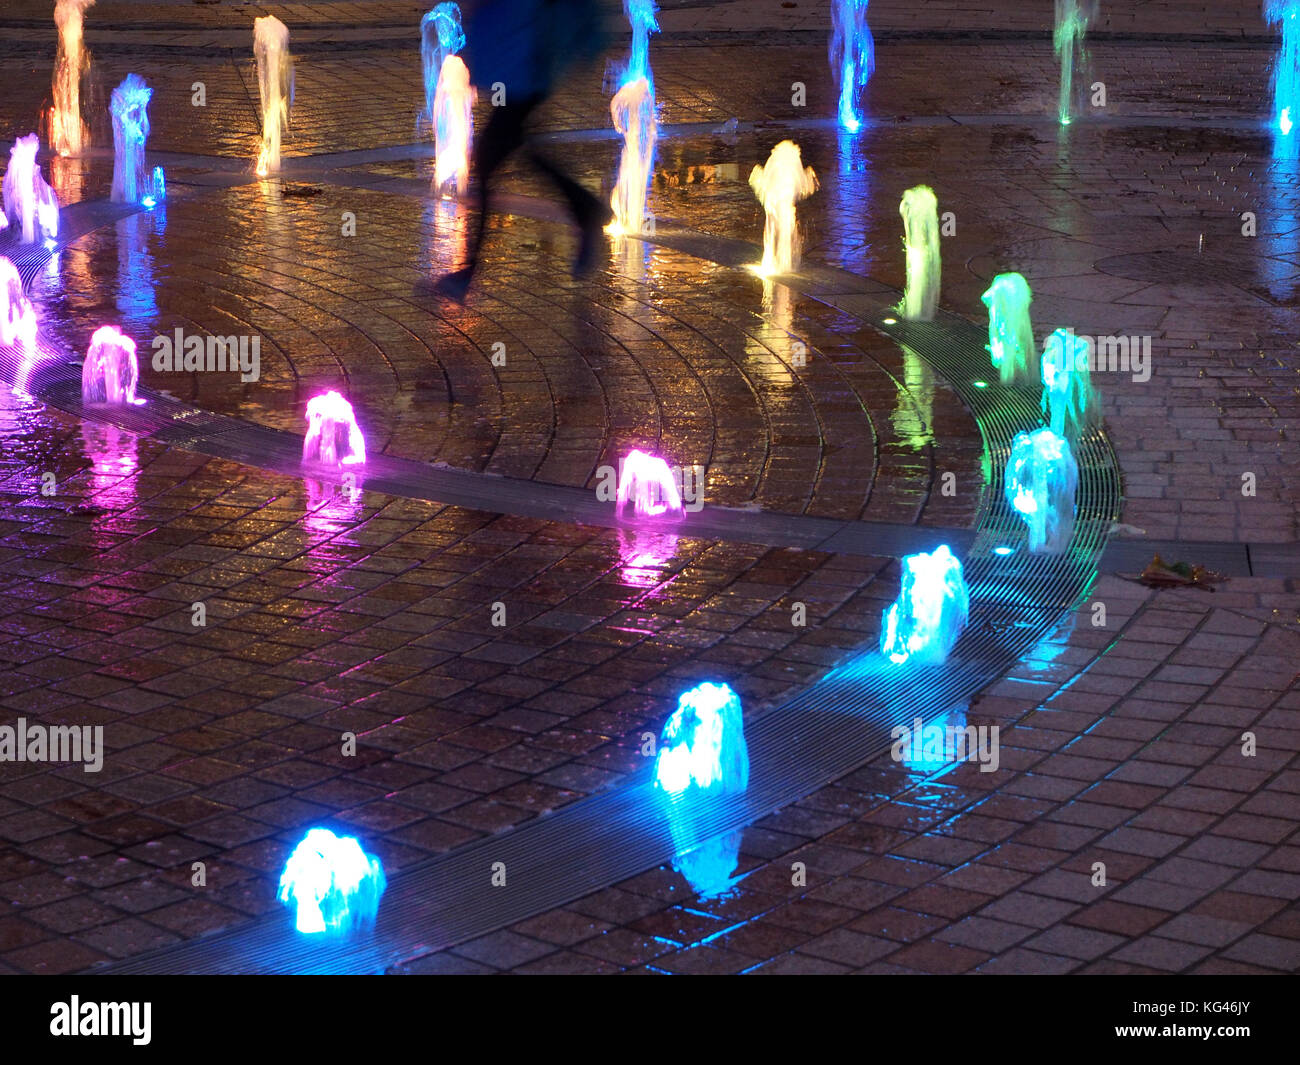 Hull, UK. 2nd Nov, 2017. Youngsters enjoy the illuminated fountains in the centre of Hull - City of Culture 2017 - Stock Image